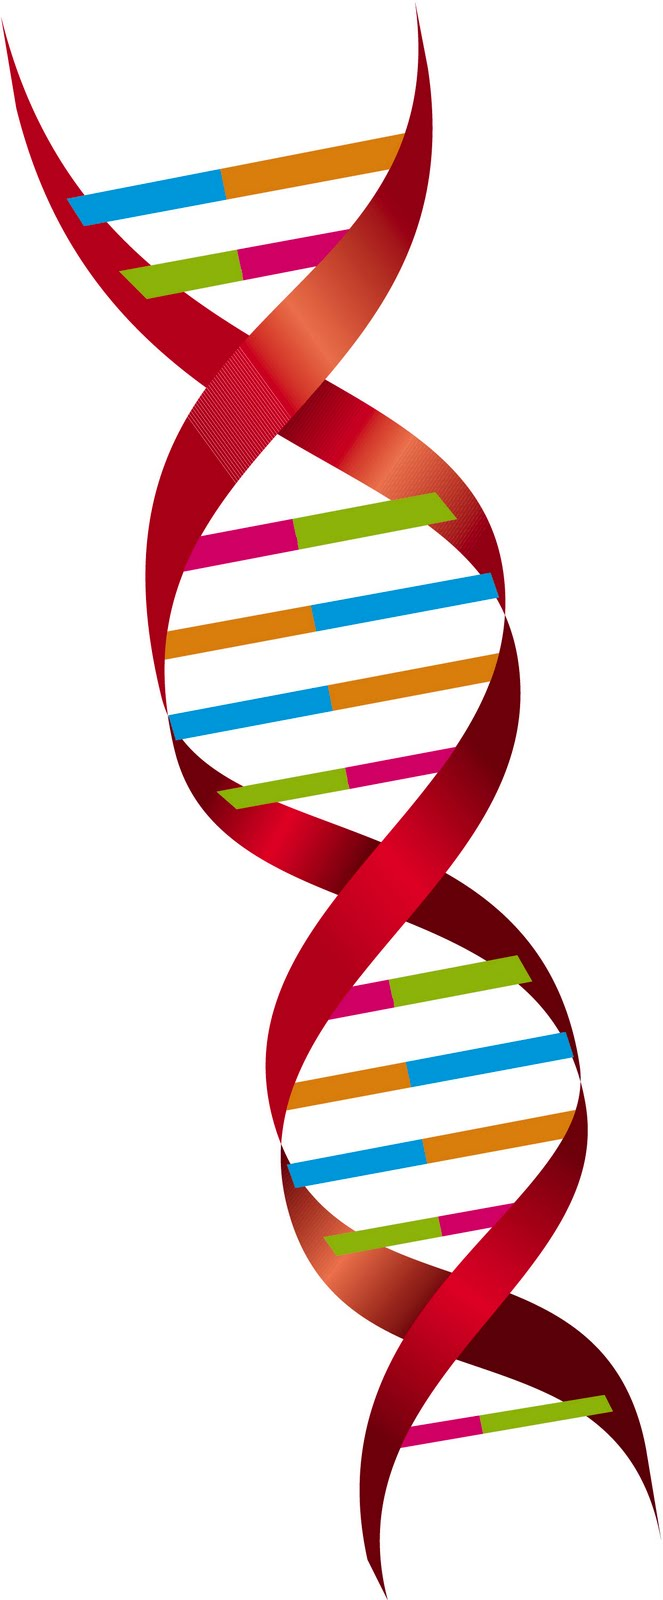 Hcv new drugs personalized medicine genetic makeup to for Personalized dna art